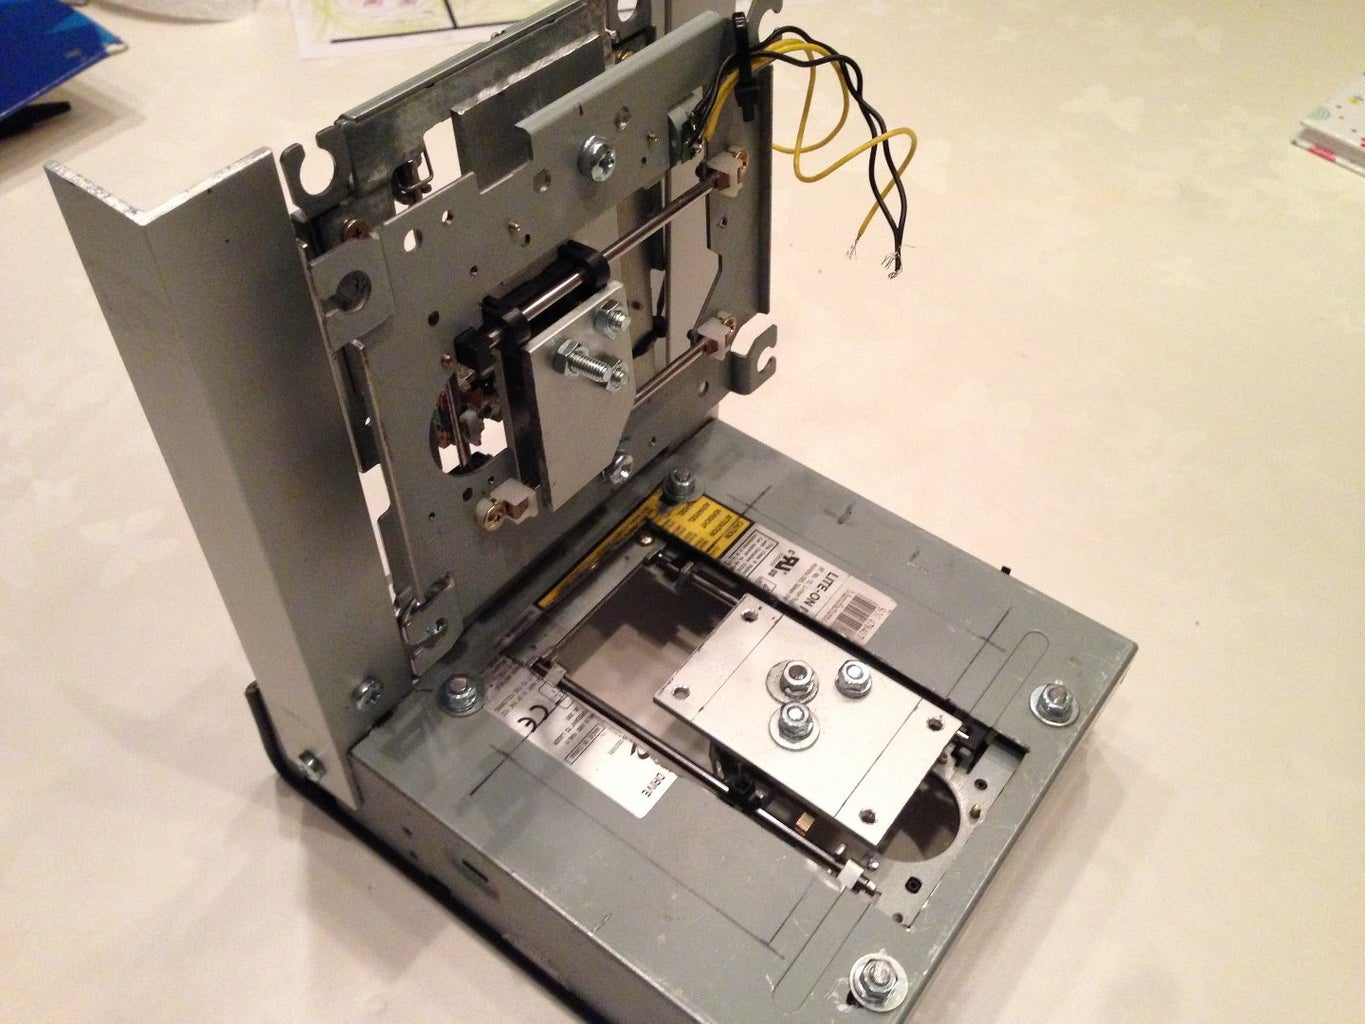 Creating 3D Printer Framework From DVD Chassis and Parts